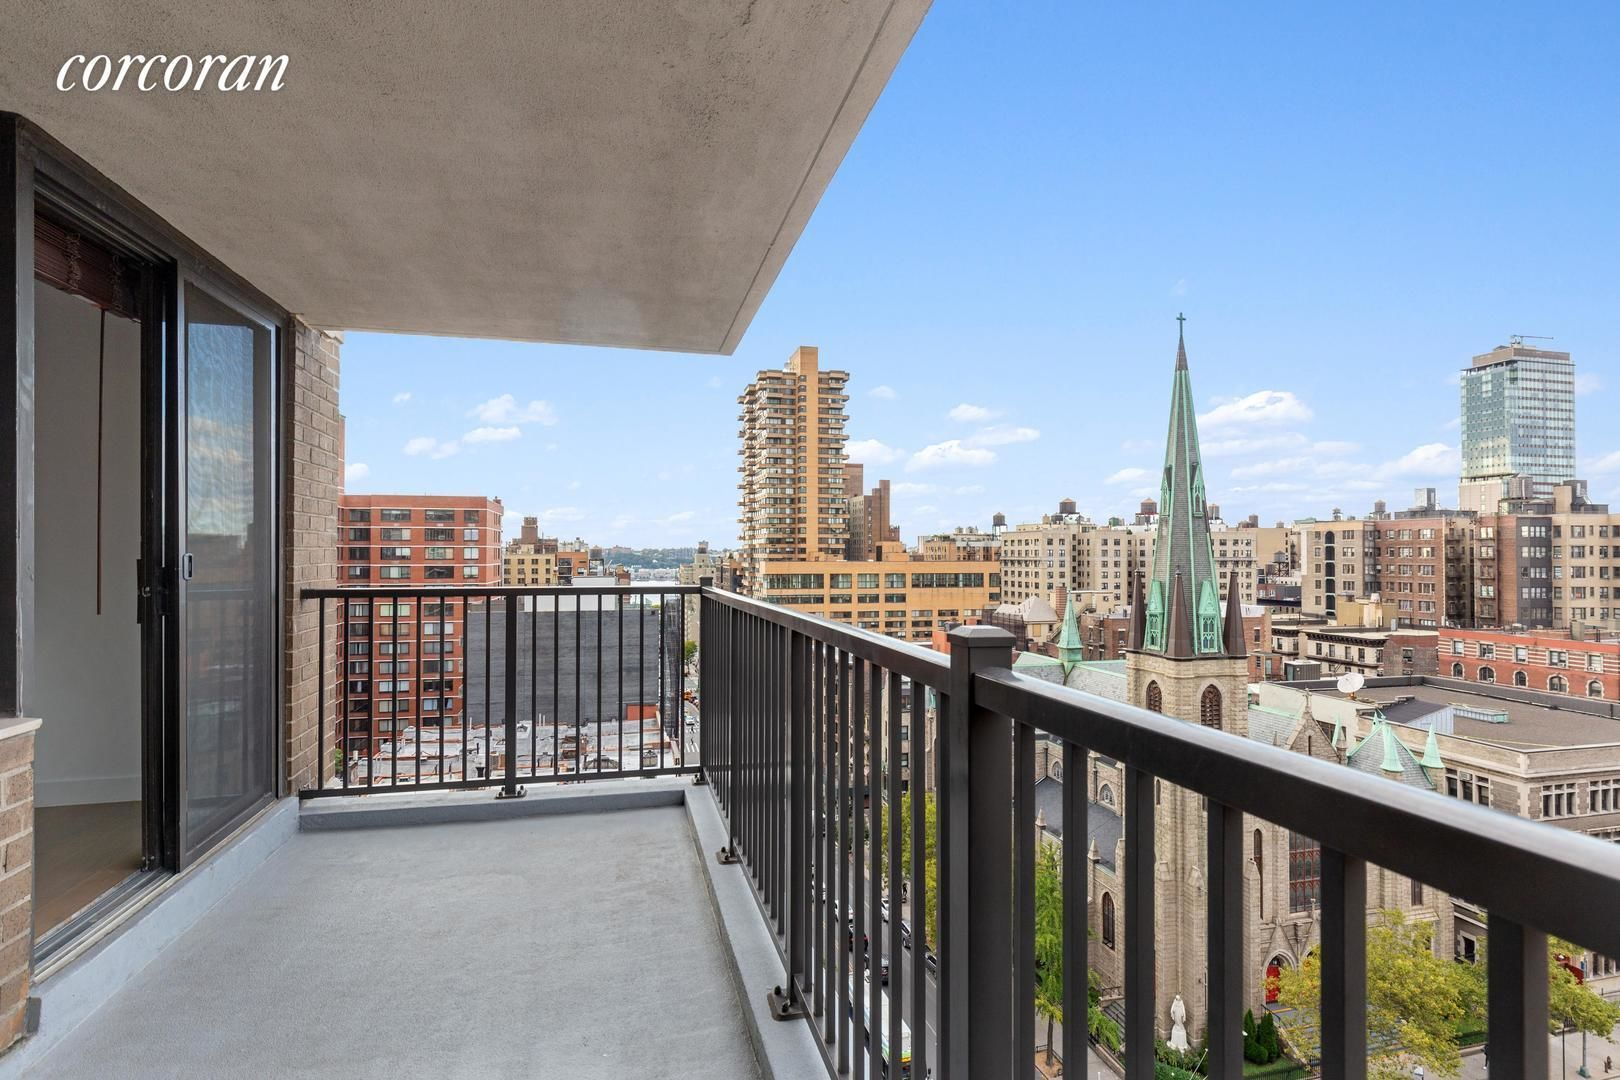 Apartment for sale at 175 West 95th Street, Apt 14F